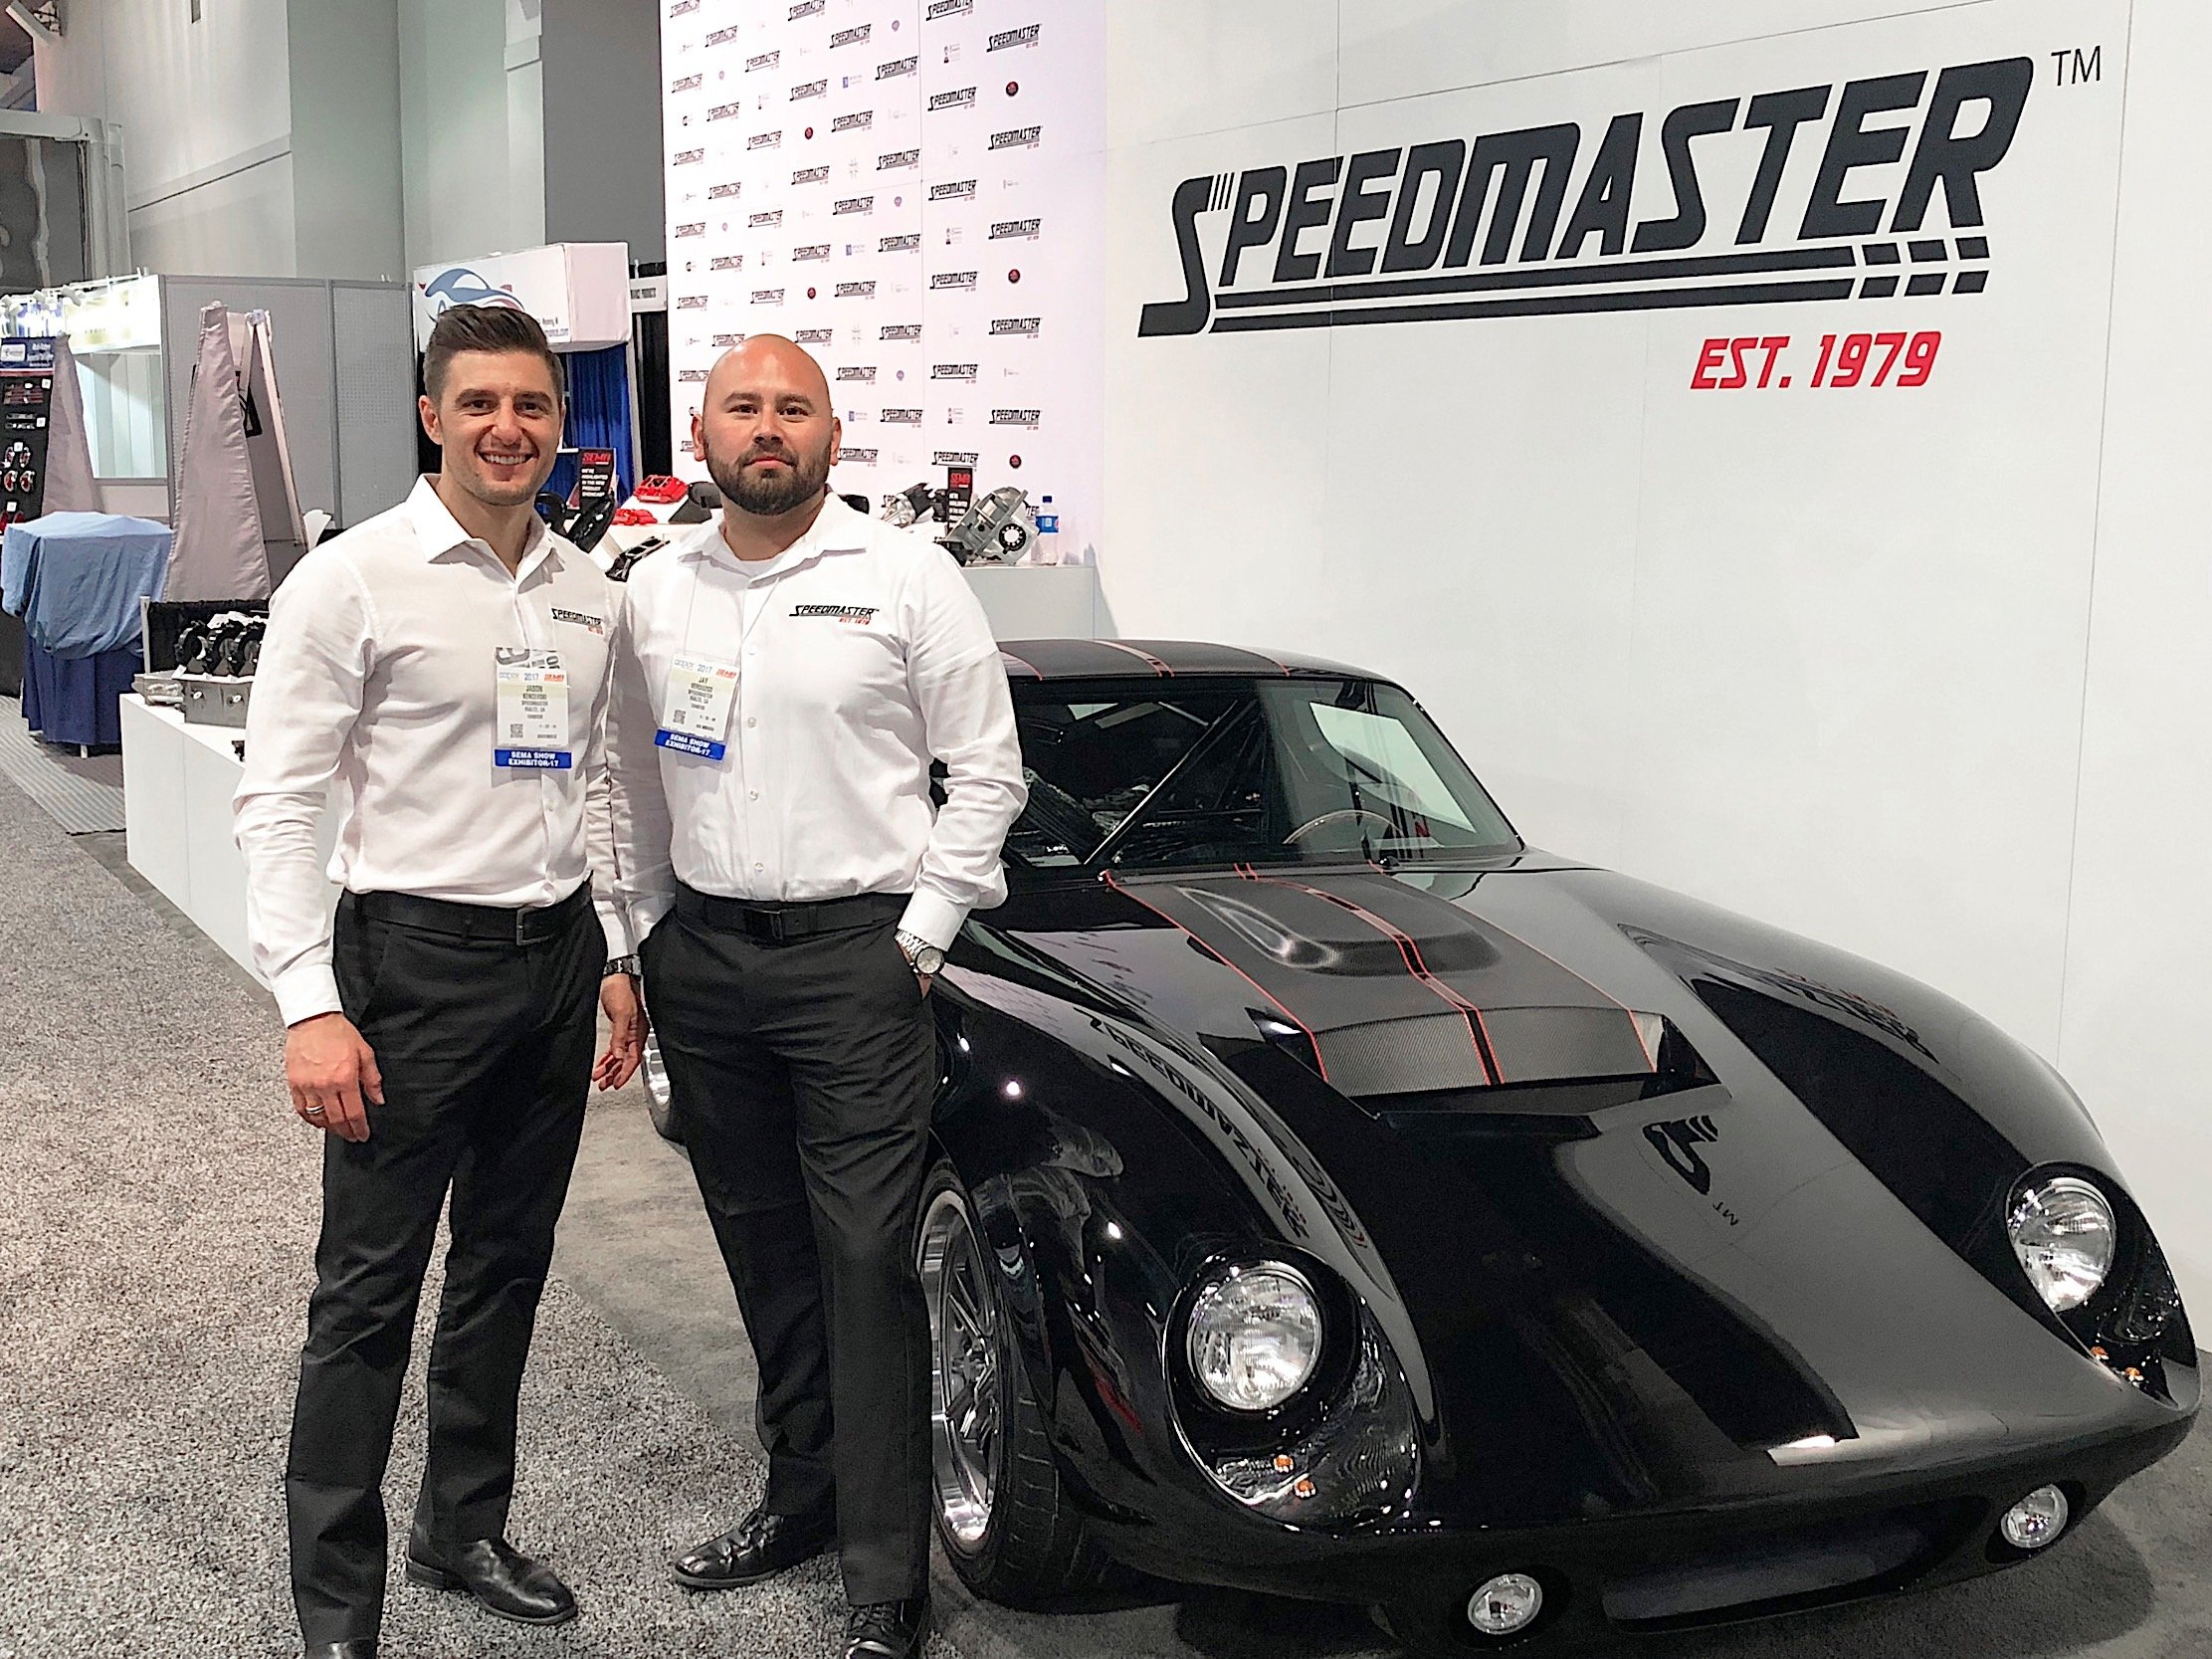 Speedmaster Daytona Coupe Draws Huge Crowd of Fans at the 2017 SEMA Show in Las Vegas